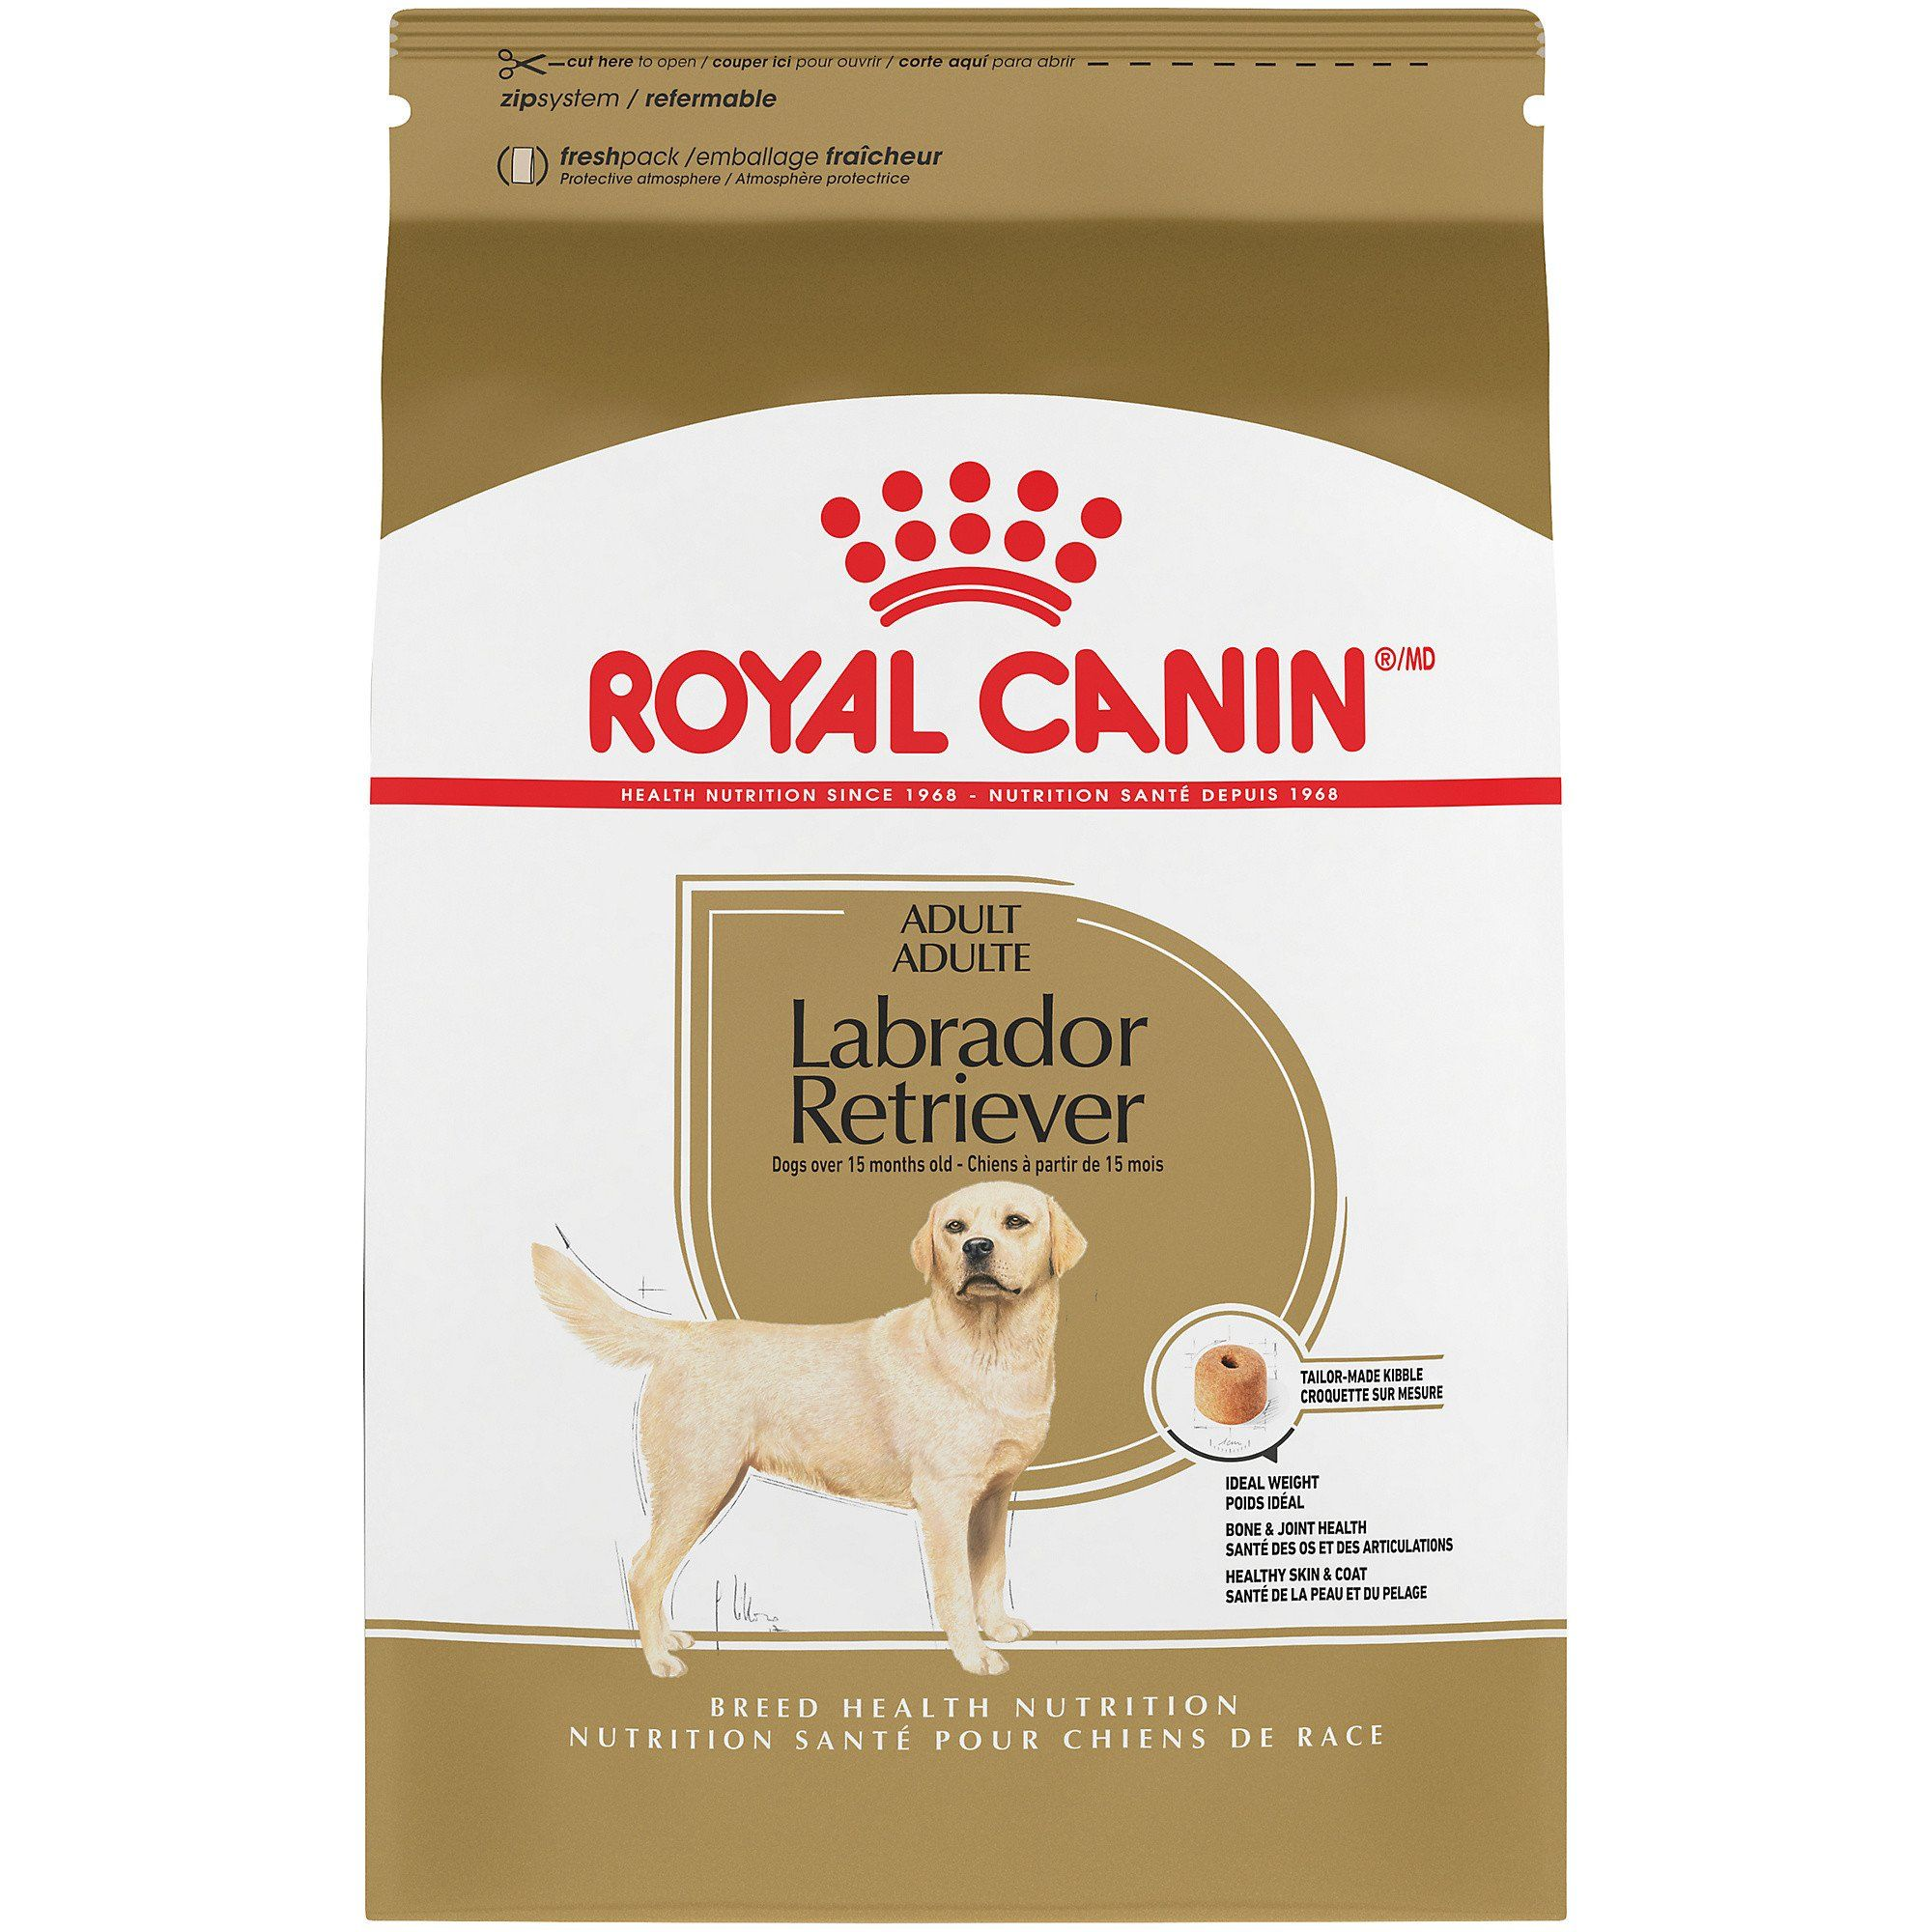 Royal Canin Breed Health Nutrition Labrador Retriever Adult Dry